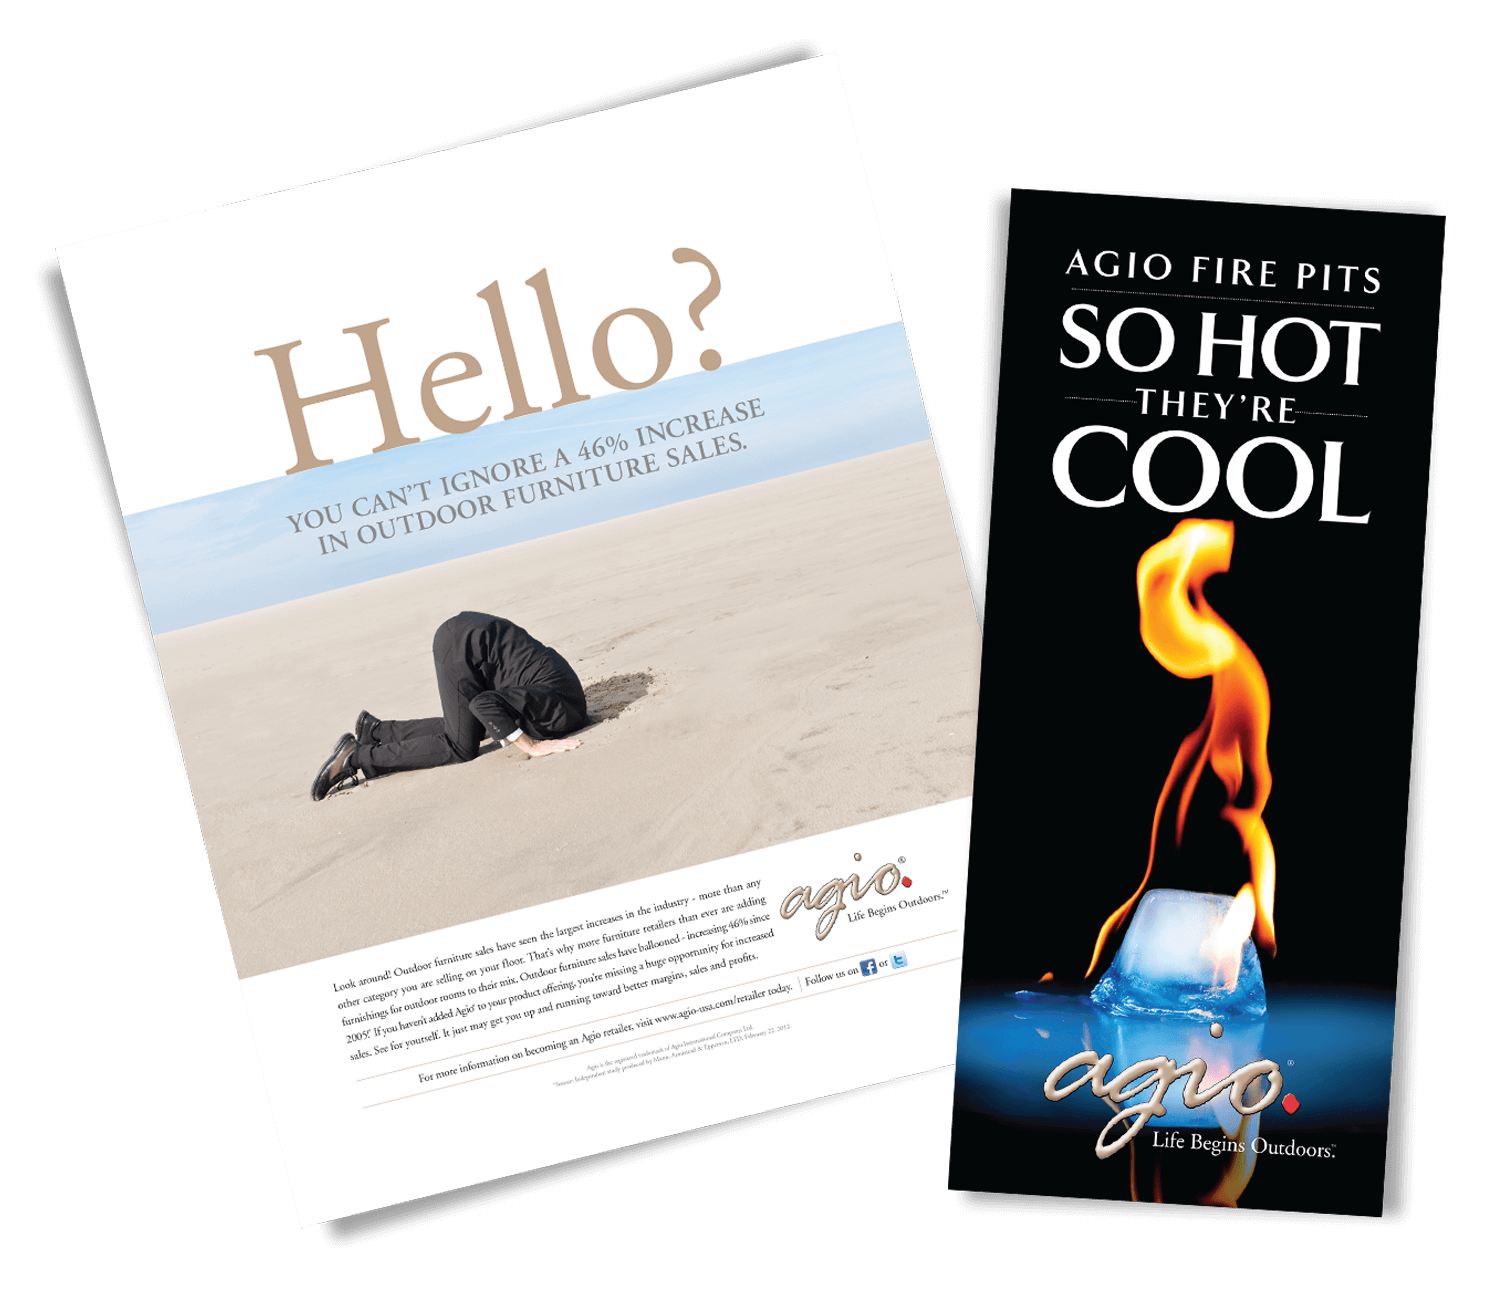 Agio print ad and fire pit banner